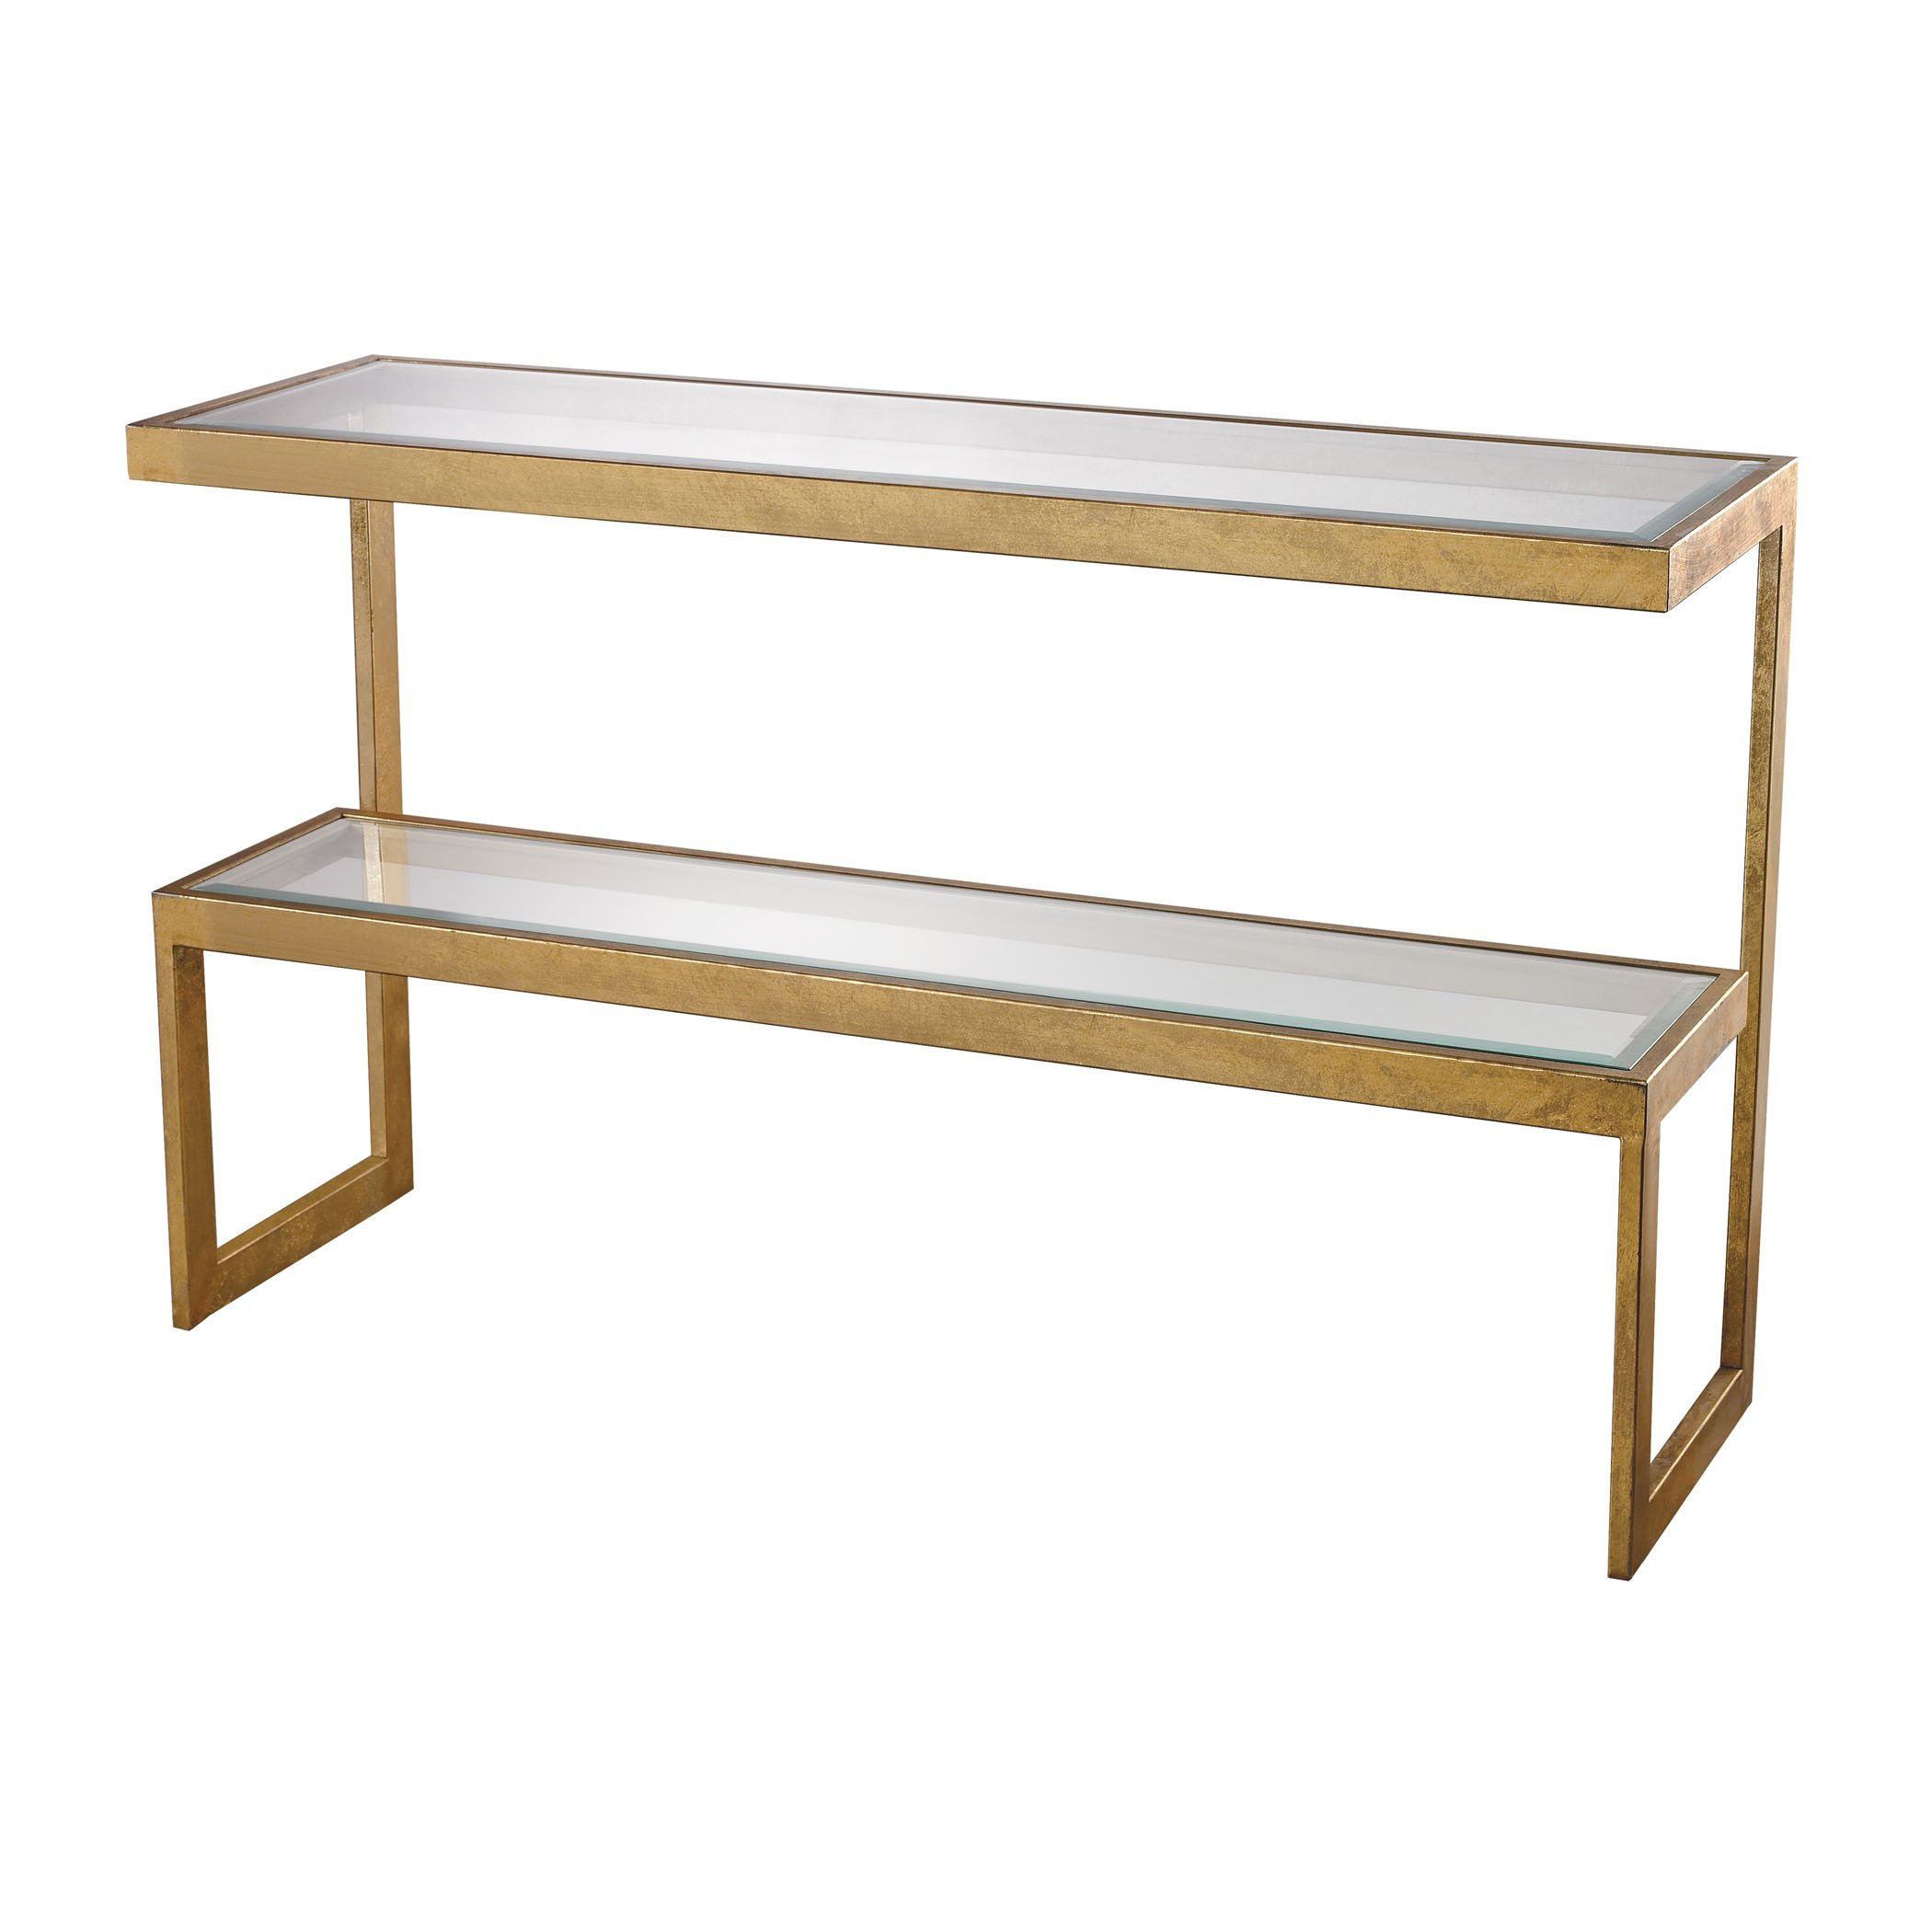 Dimond Home 114-145 Key Console Table, 54'' x 16'' x 33'', Gold Leaf